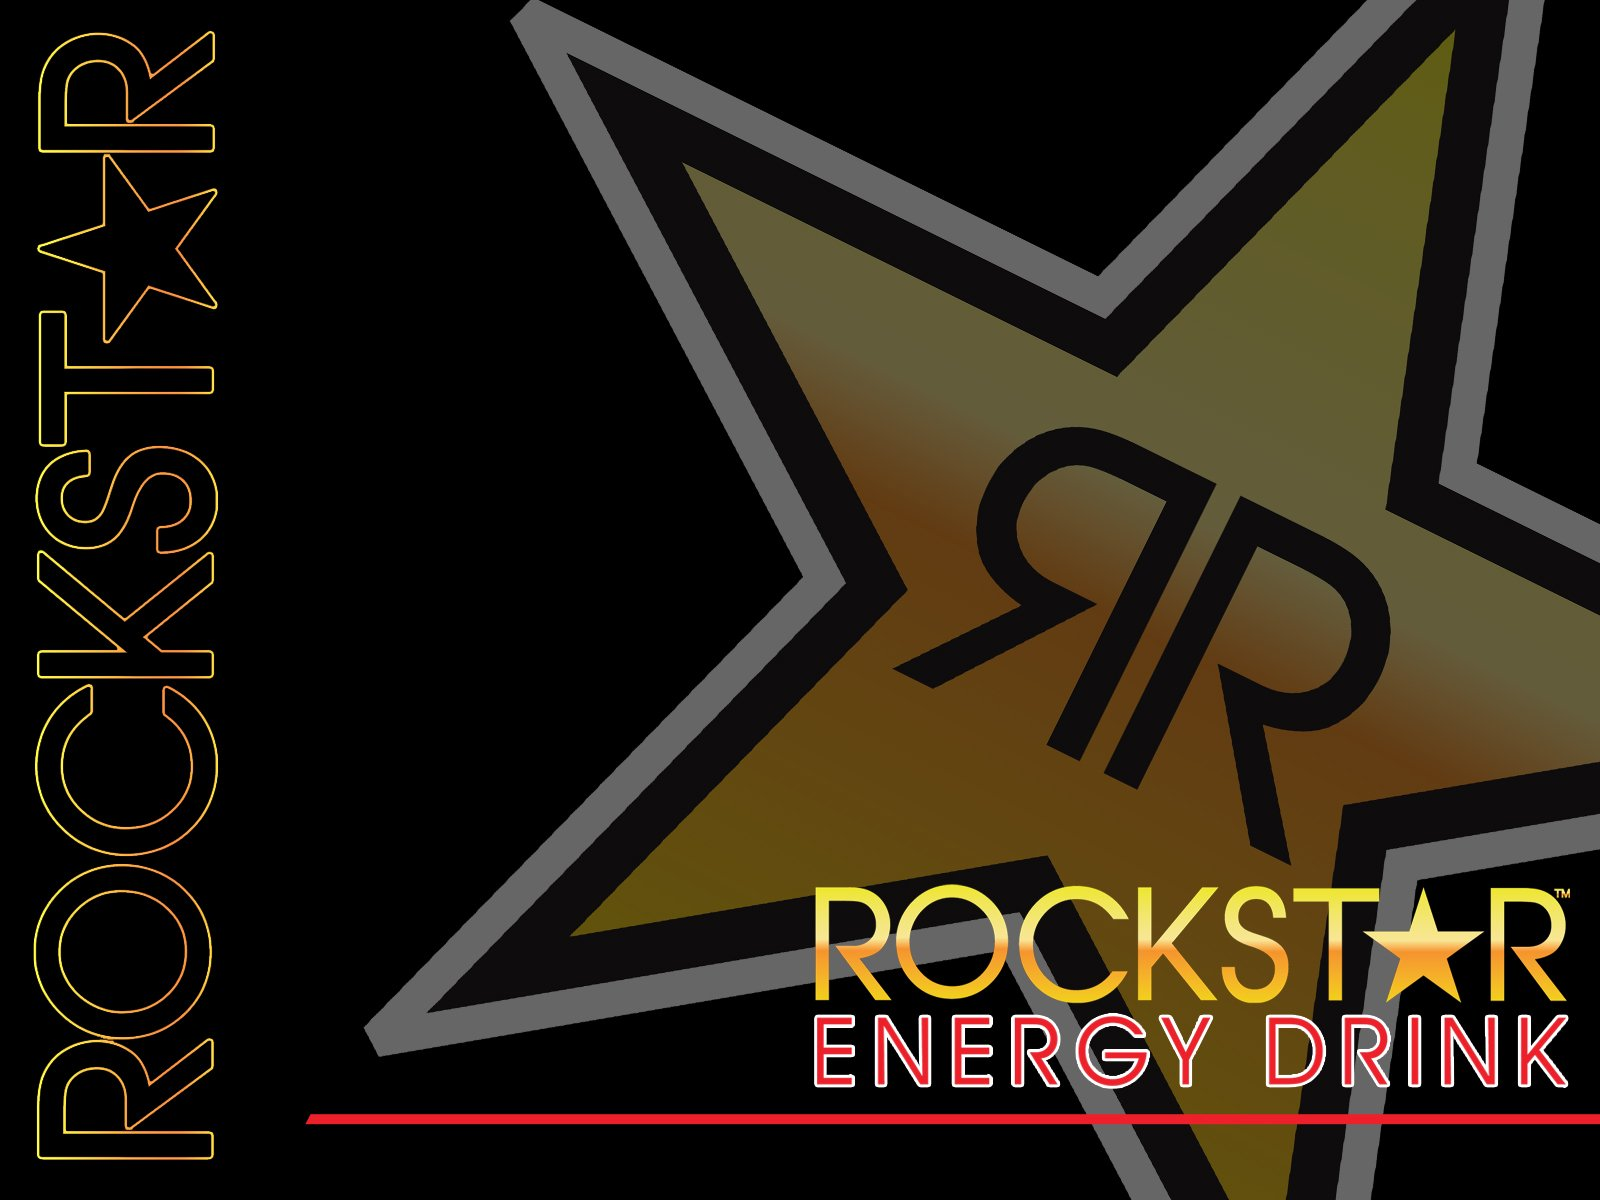 Rockstar Energy Drink wallpaper 88877 1600x1200